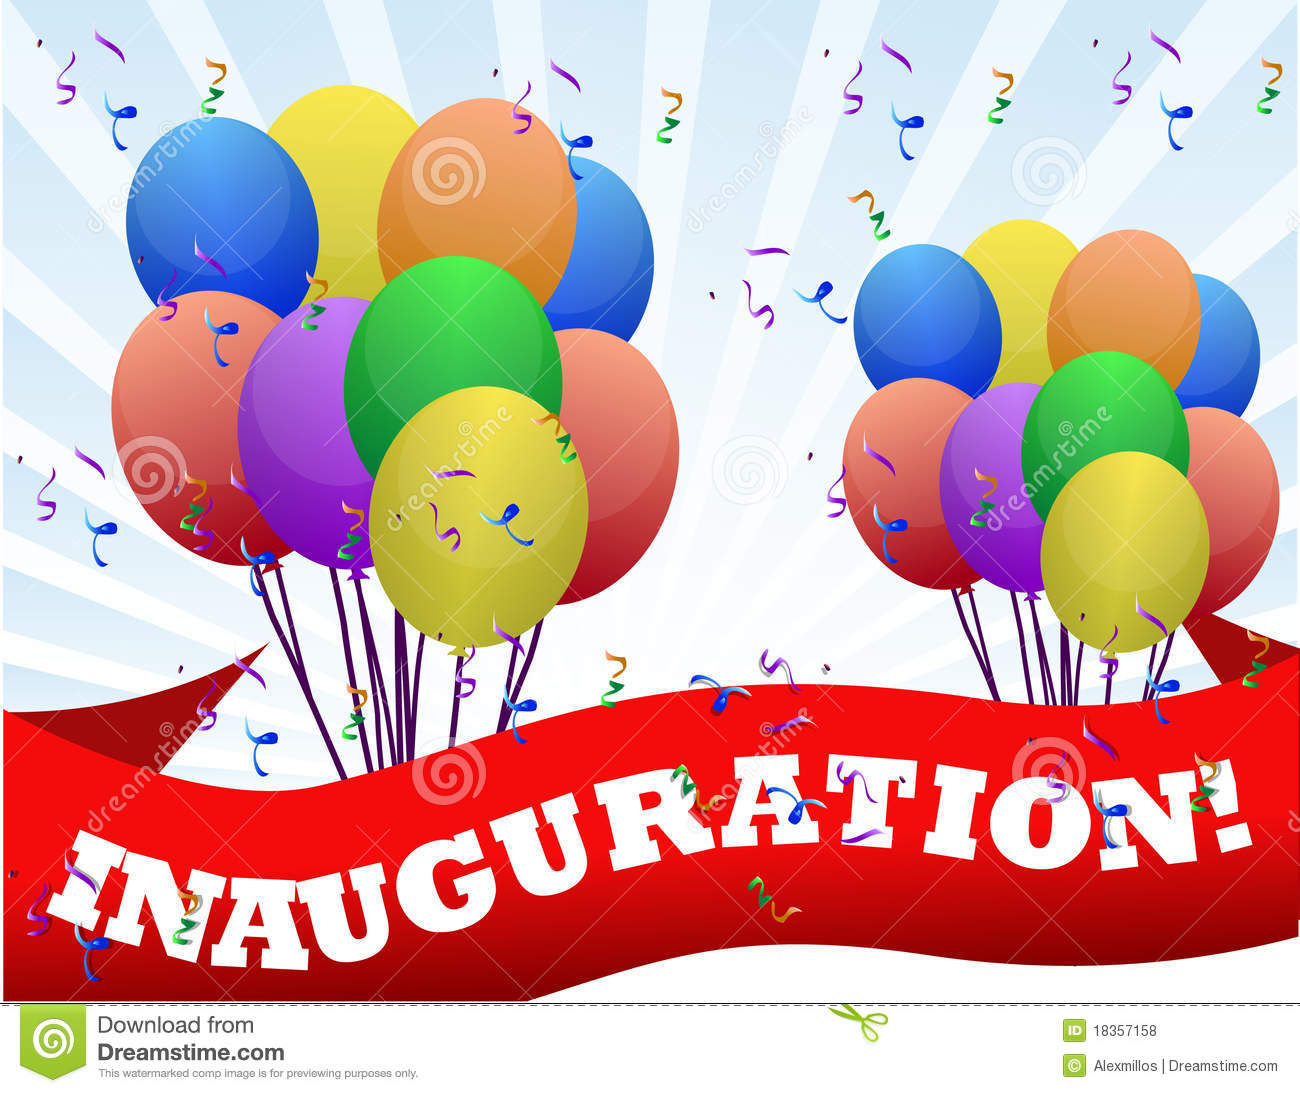 Inauguration%20Day%20clipart